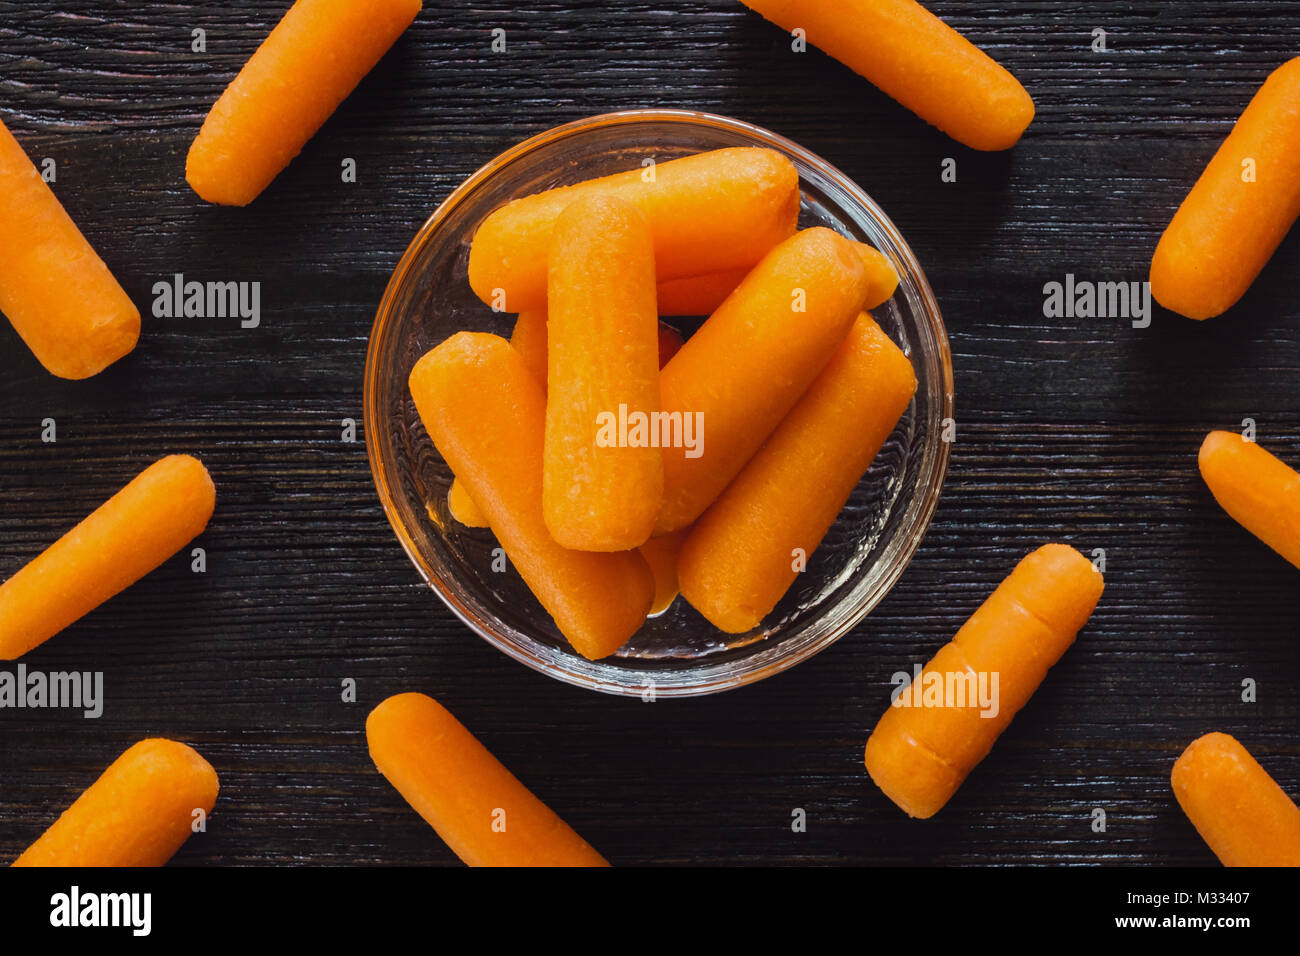 Bowl of Baby Carrots with Scattered Carrots on Dark Table - Stock Image